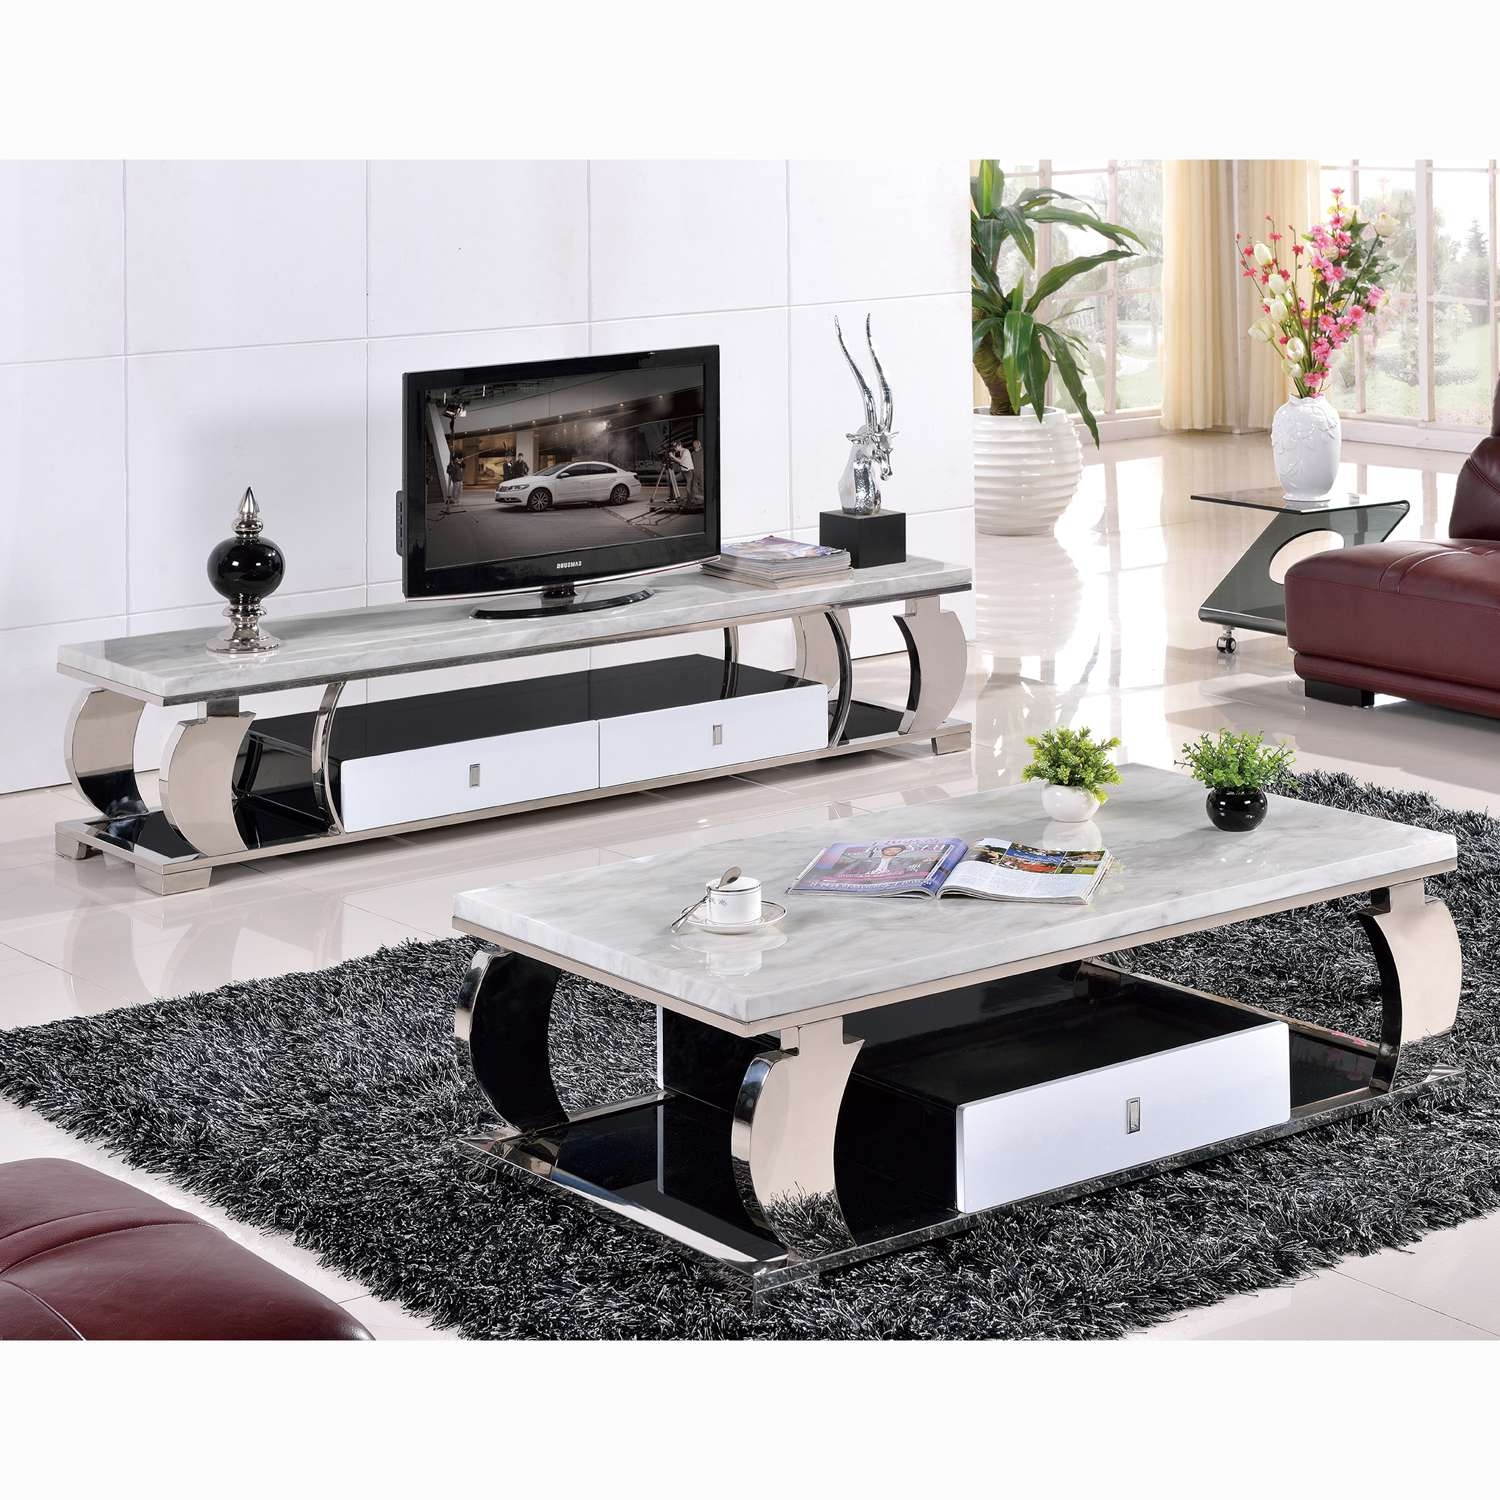 Grade Stainless Steel Marble Glass Coffee Table Tv Cabinet Modern Pertaining To Recent Tv Unit And Coffee Table Sets (Gallery 18 of 20)